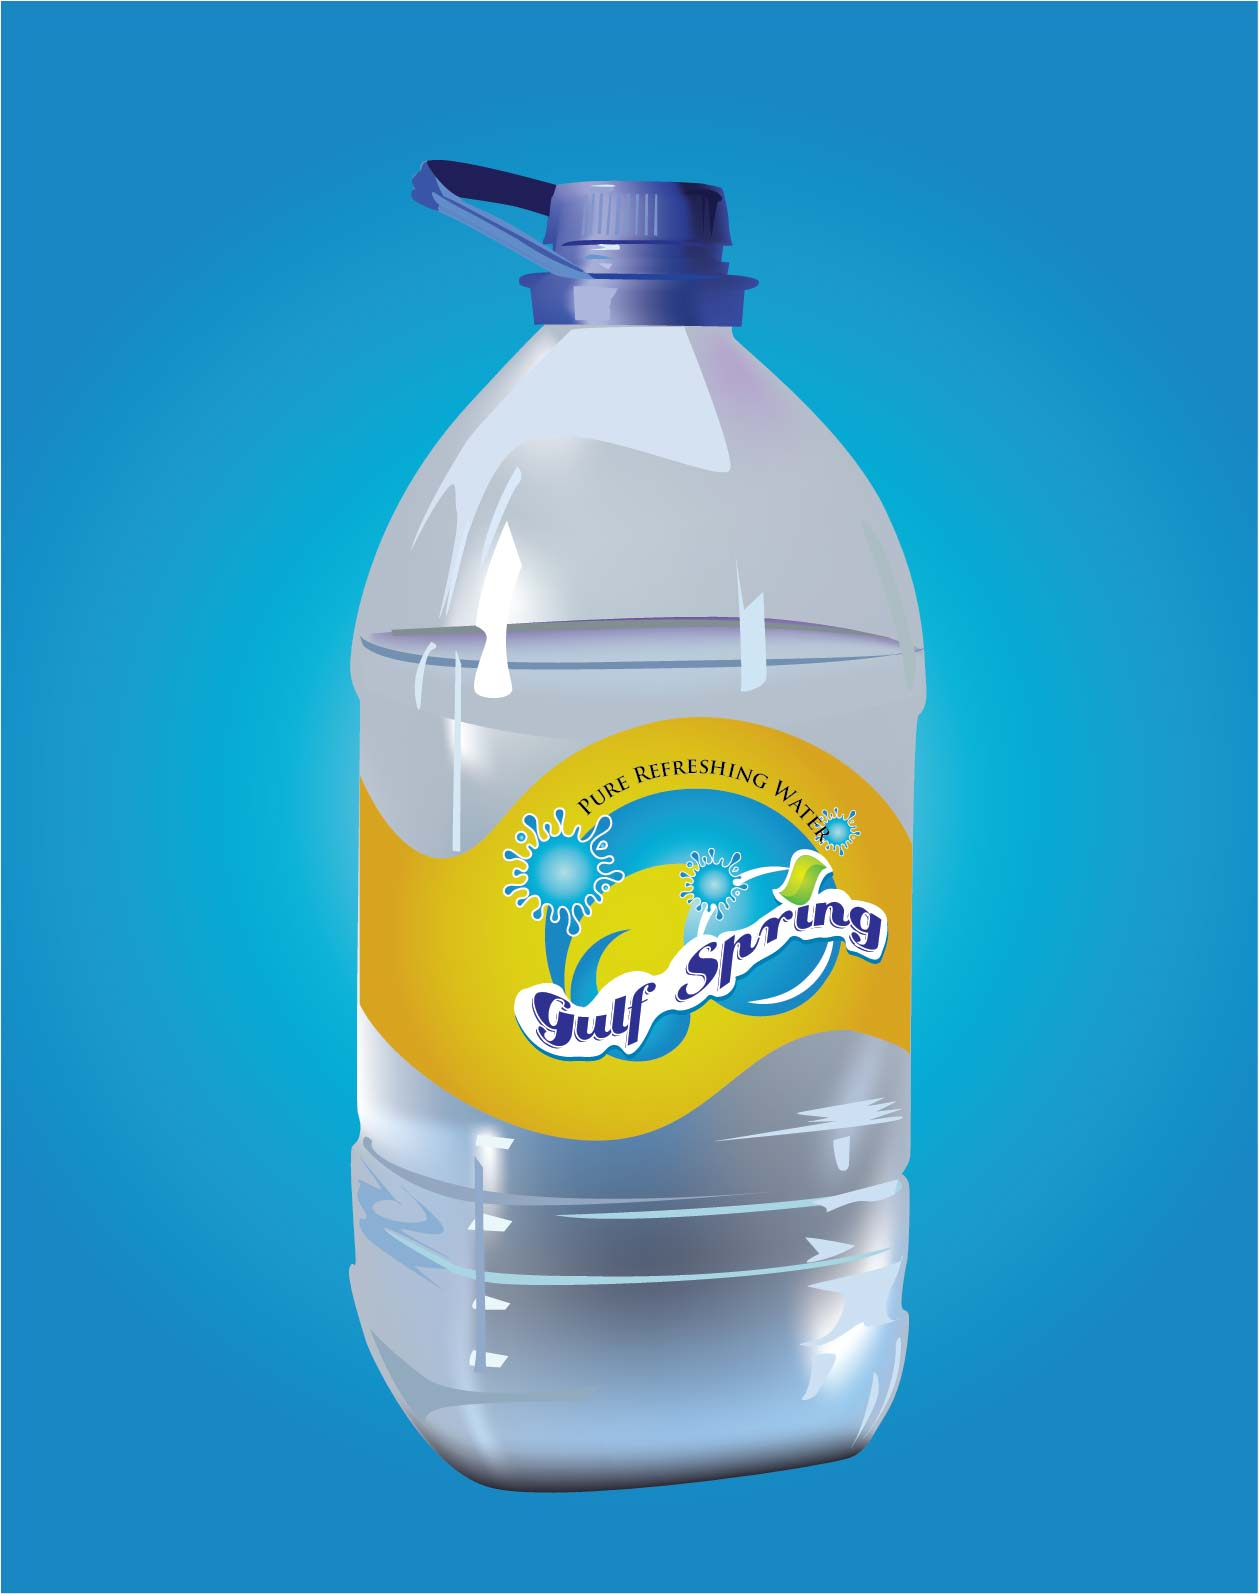 Logo Design by Mahida Kirit Chandrasinh - Entry No. 35 in the Logo Design Contest Inspiring Logo Design for Gulf Spring.